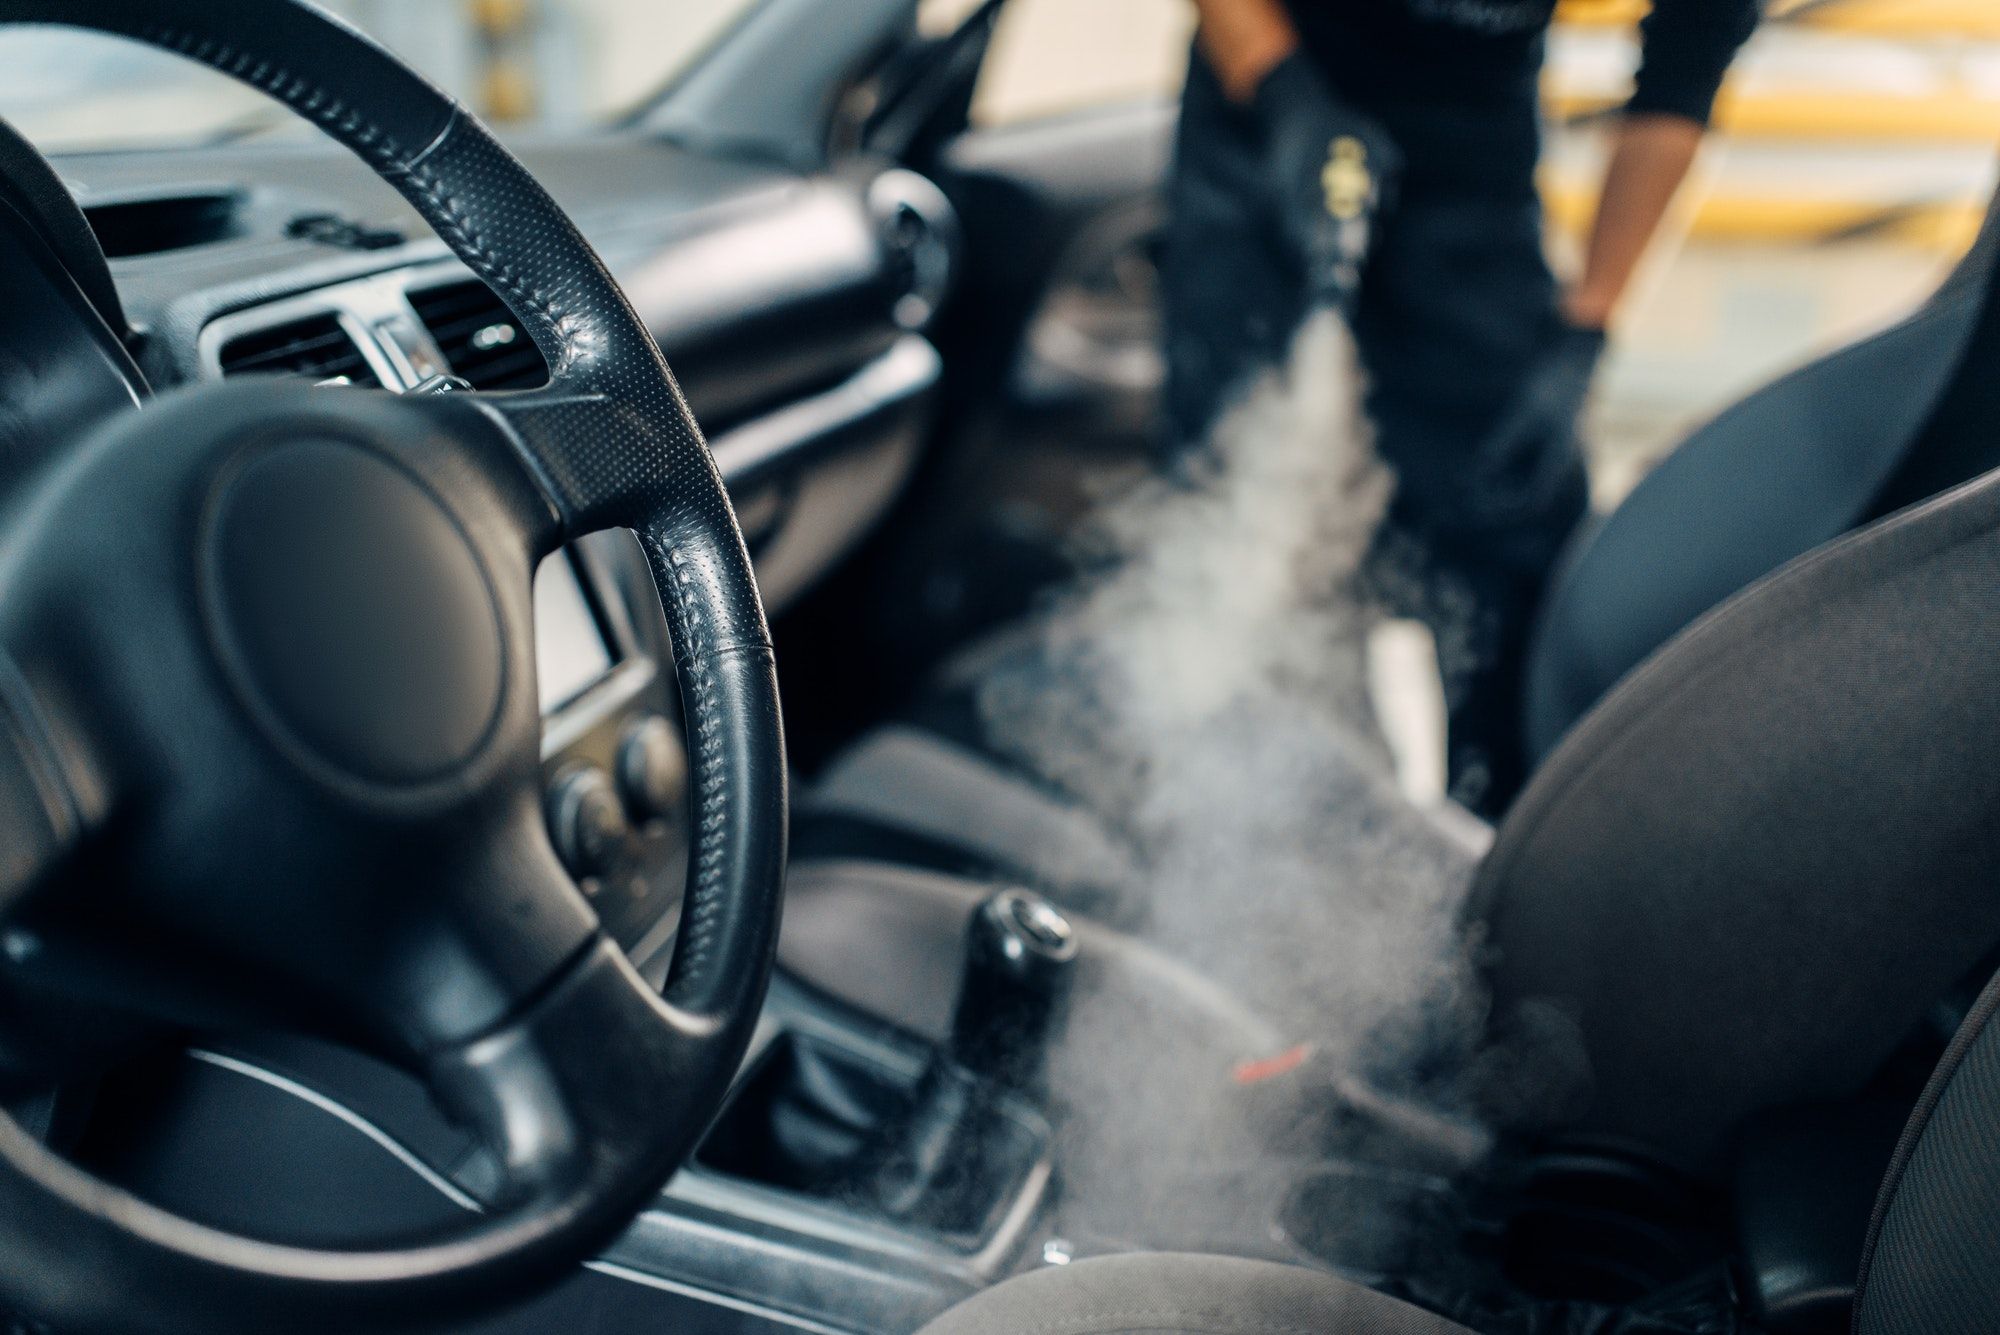 Cleaning of car salon with steam cleaner